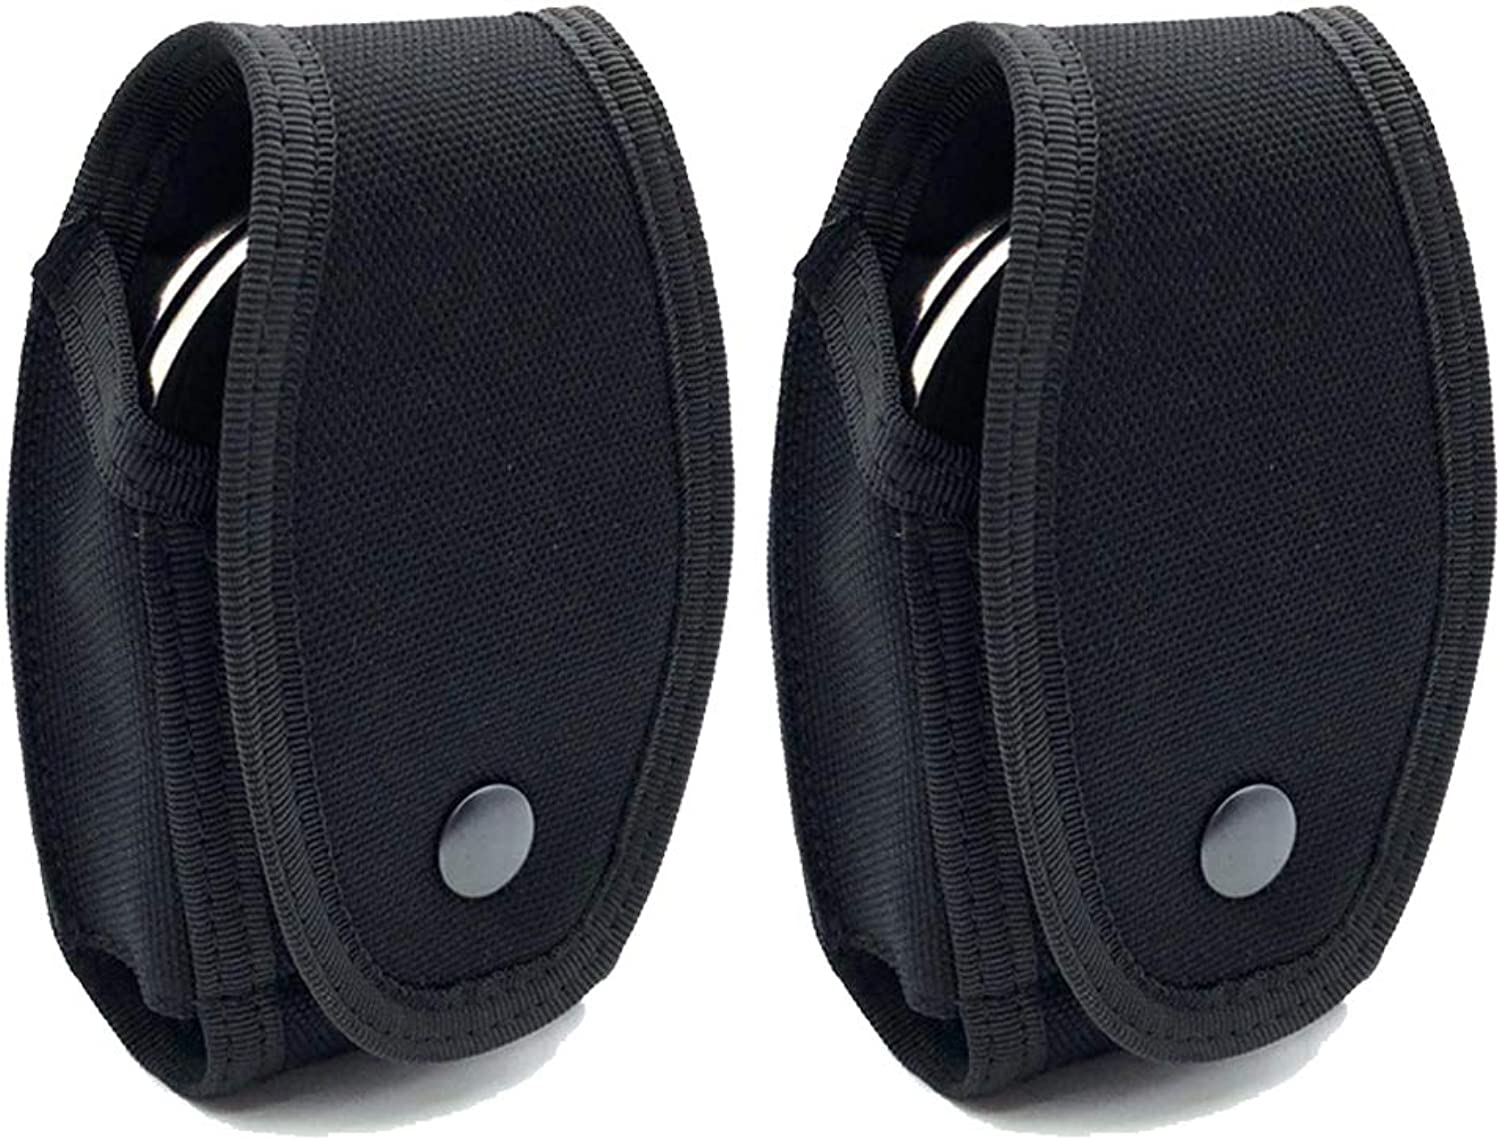 Xuanfeng (2 Pack) Universal Quick Release Handcuff Cases Handcuff Holders Pouches